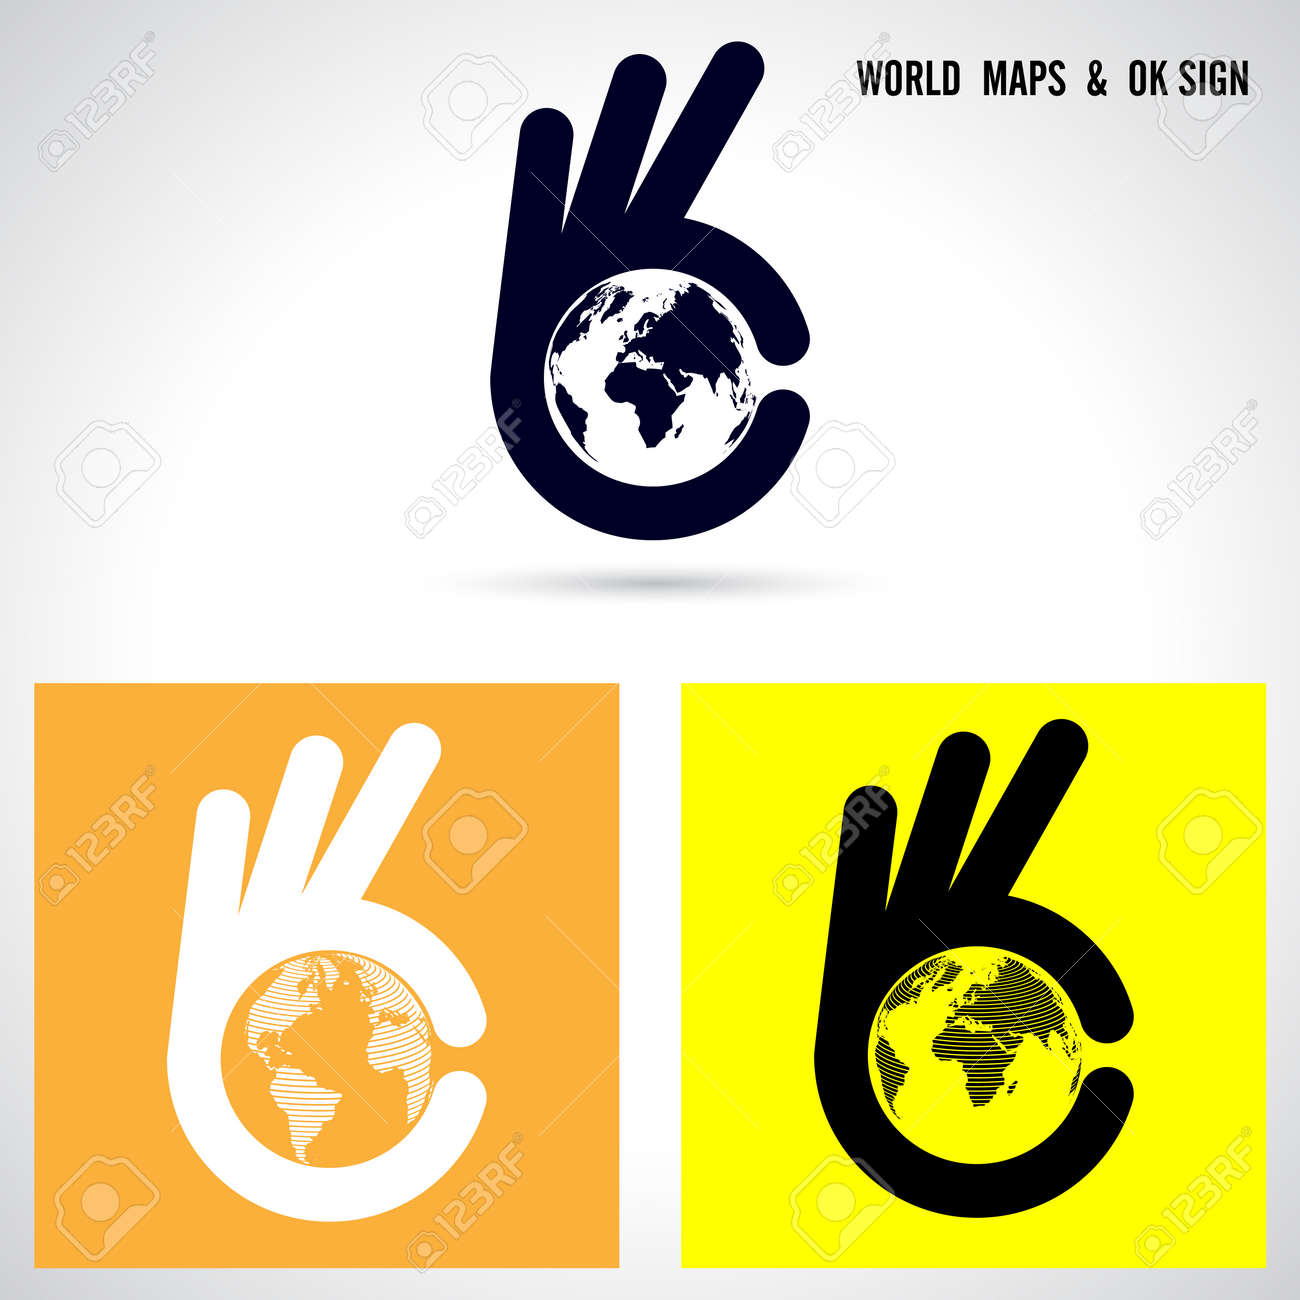 Creative hand and world map abstract logo designhand ok symbol creative hand and world map abstract logo designhand ok symbol iconrporate business gumiabroncs Gallery